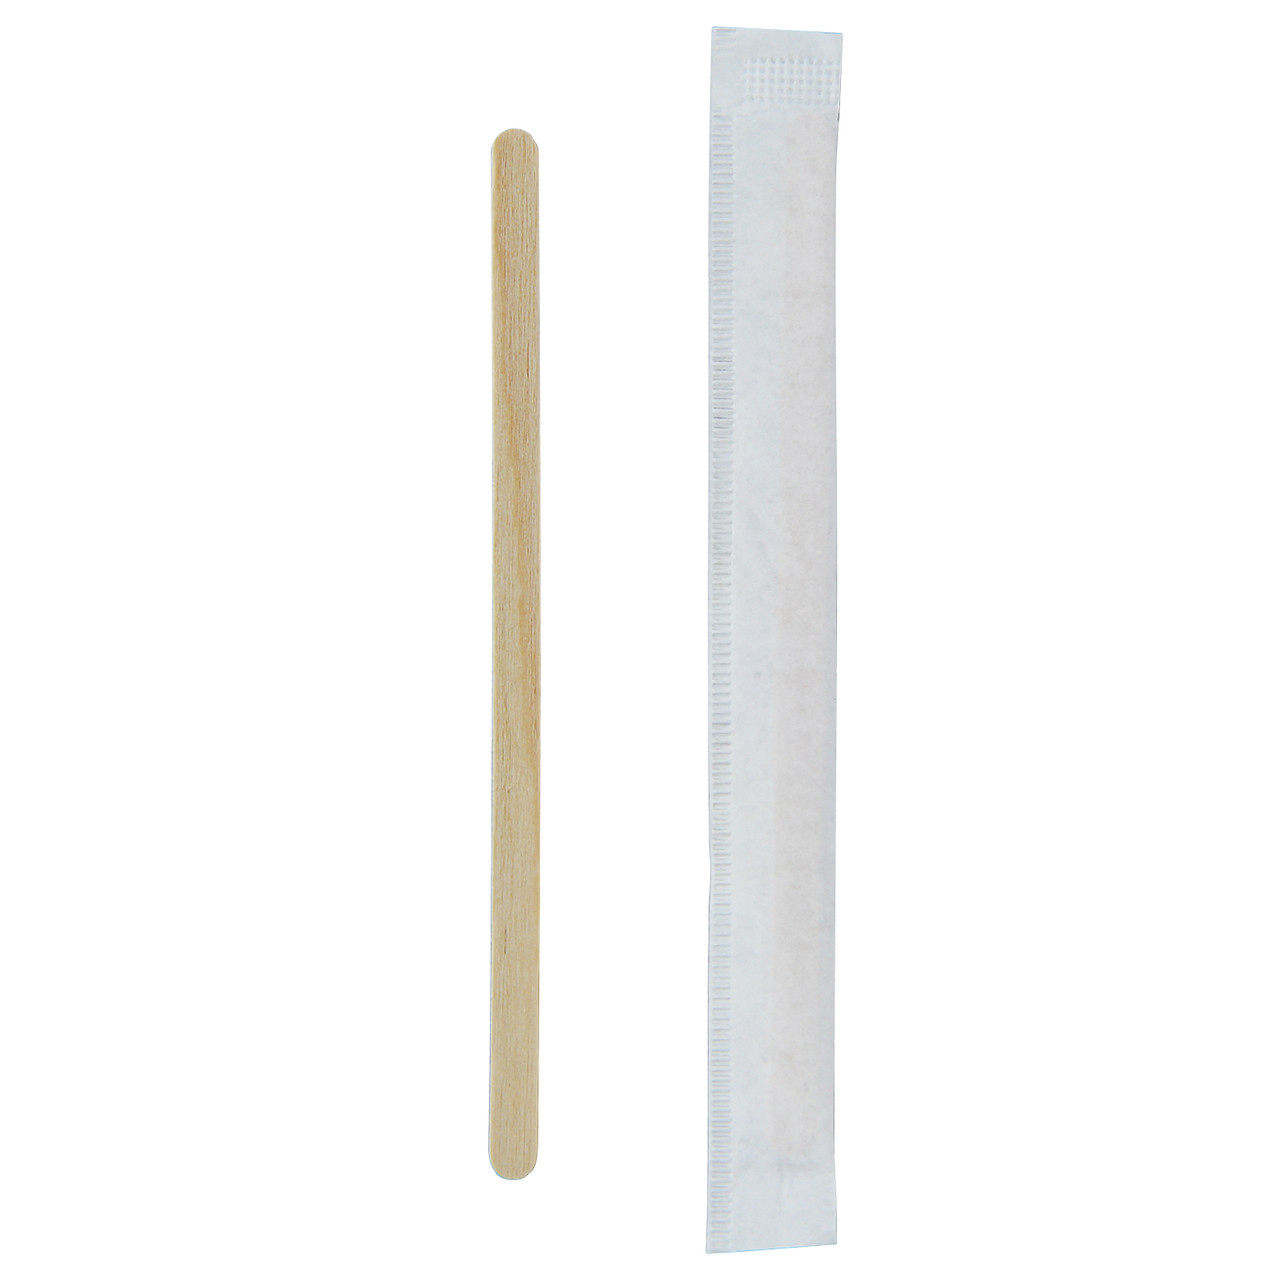 Individually Wrapped Wooden Coffee Stirrers - L:4.32in x W:.2in